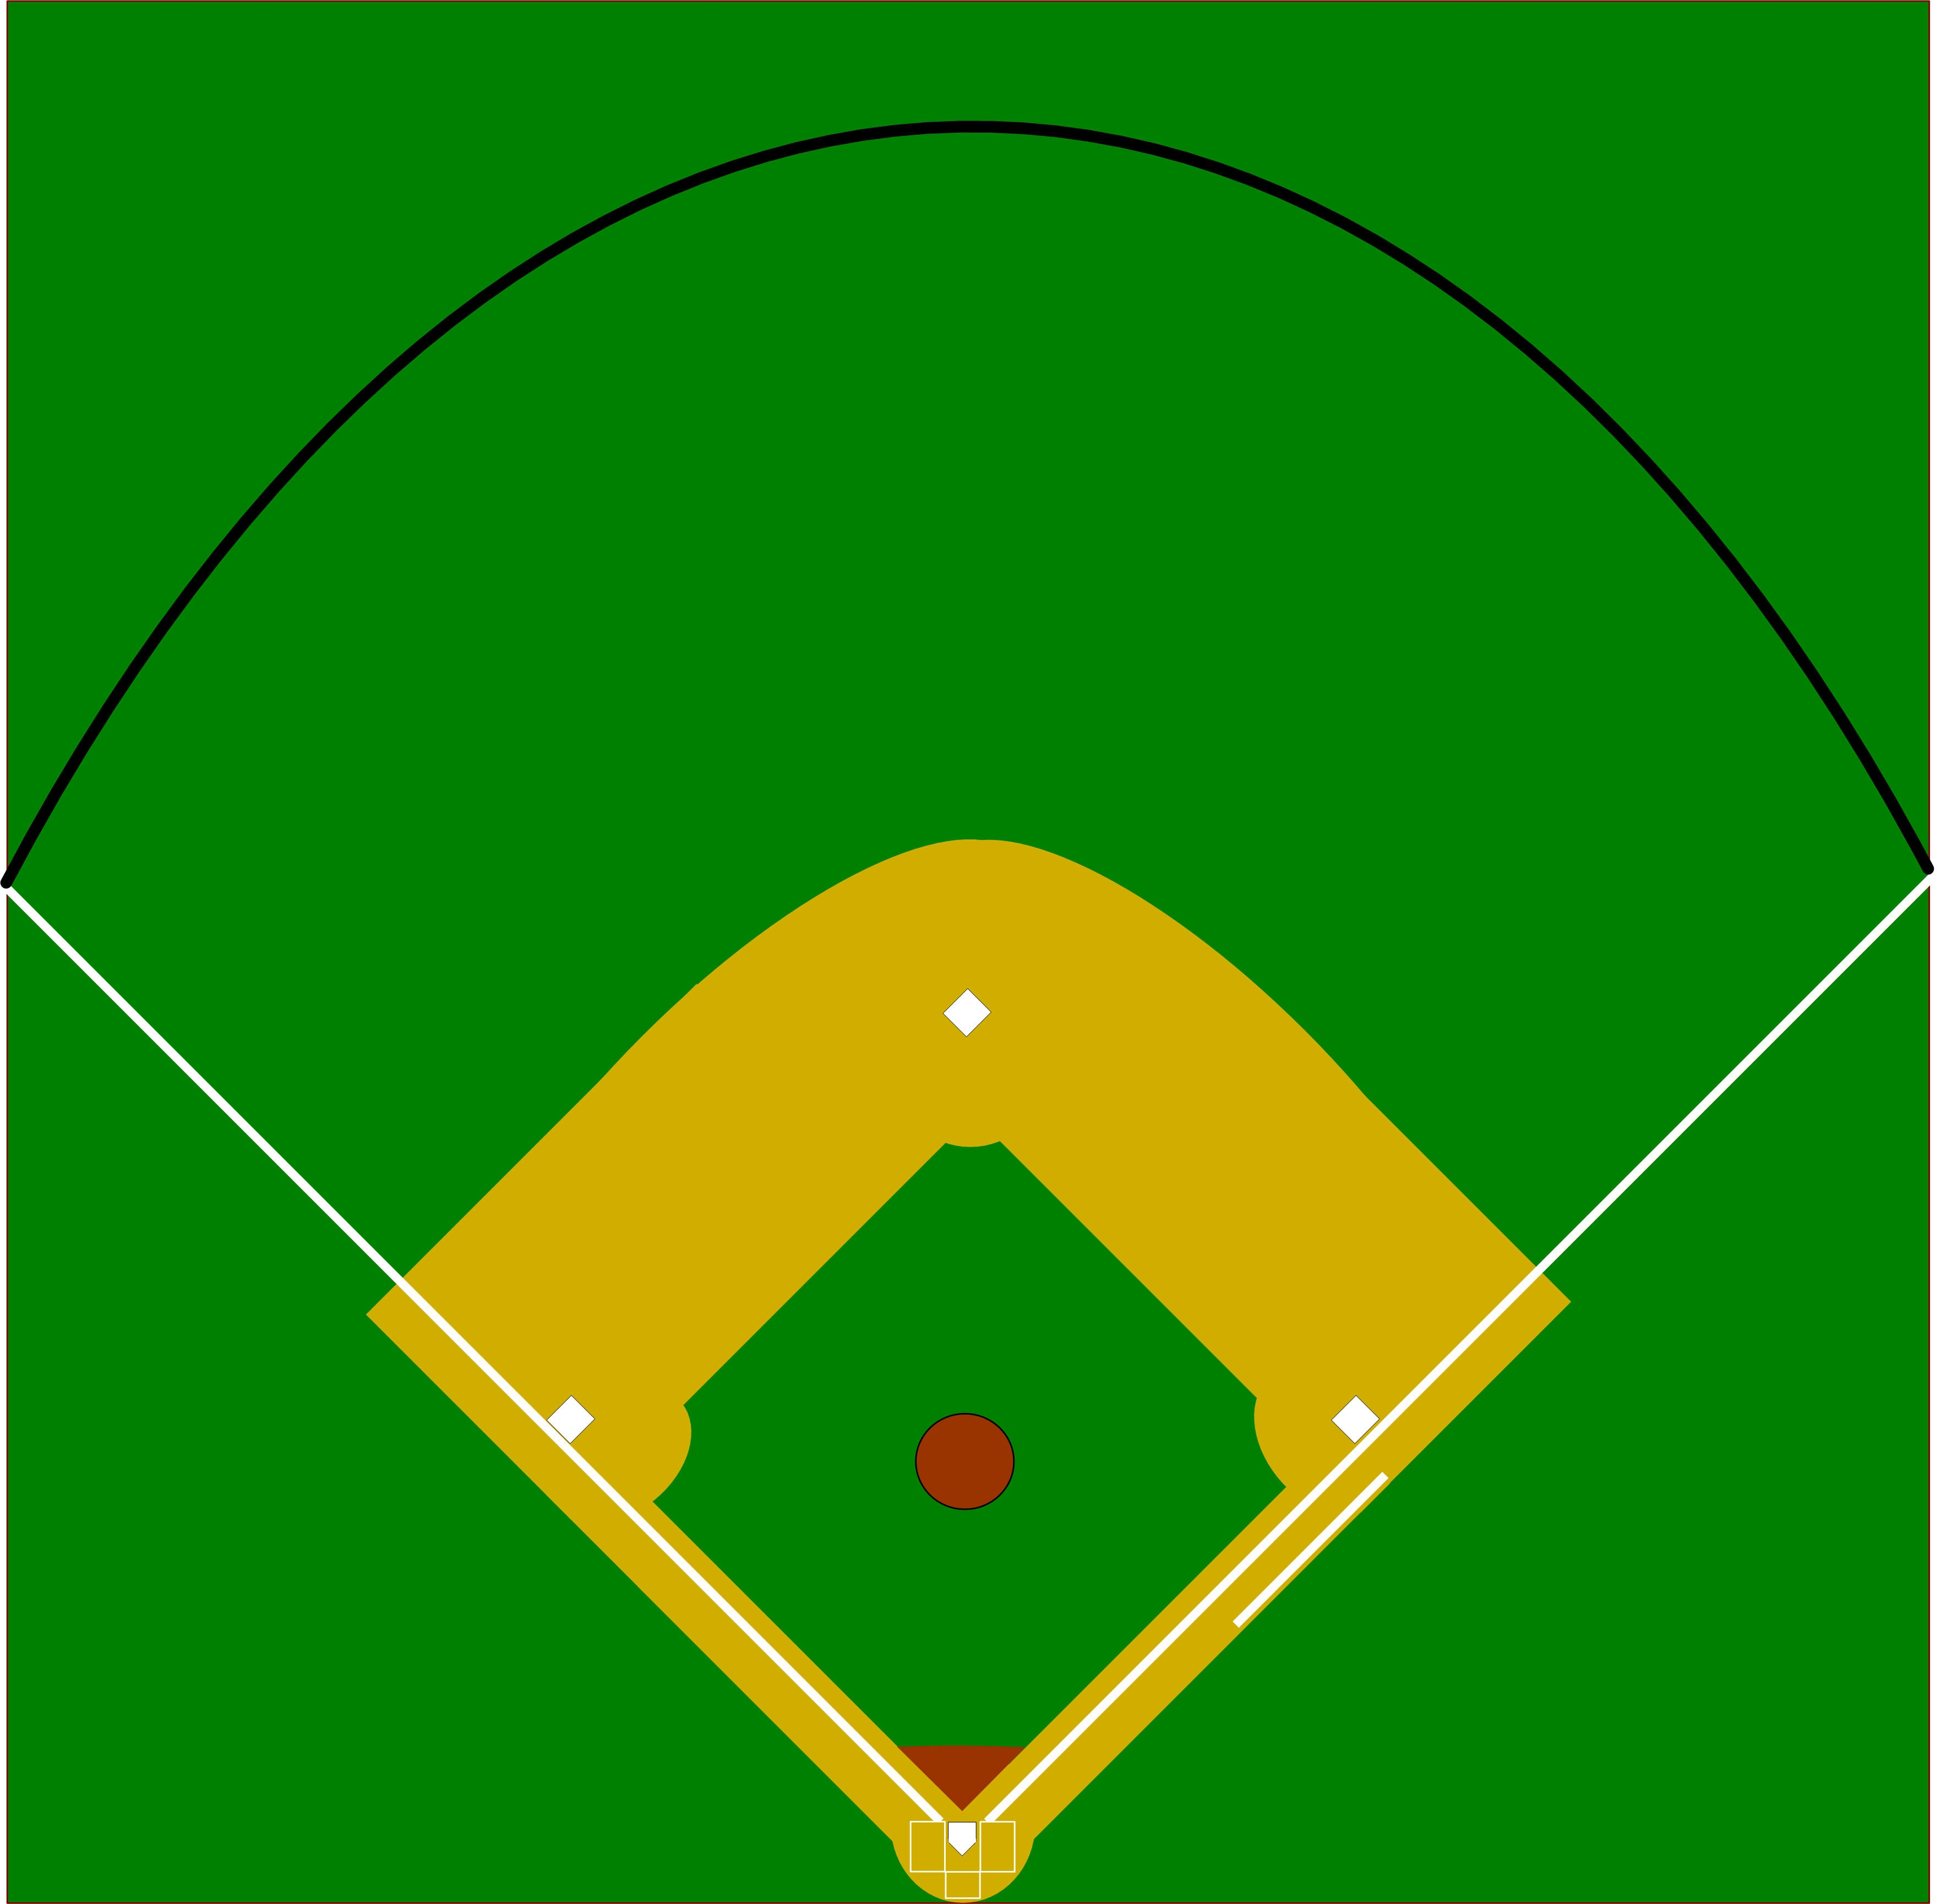 Blank Baseball Field Diagram Group With 75+ Items - Free Printable Baseball Field Diagram